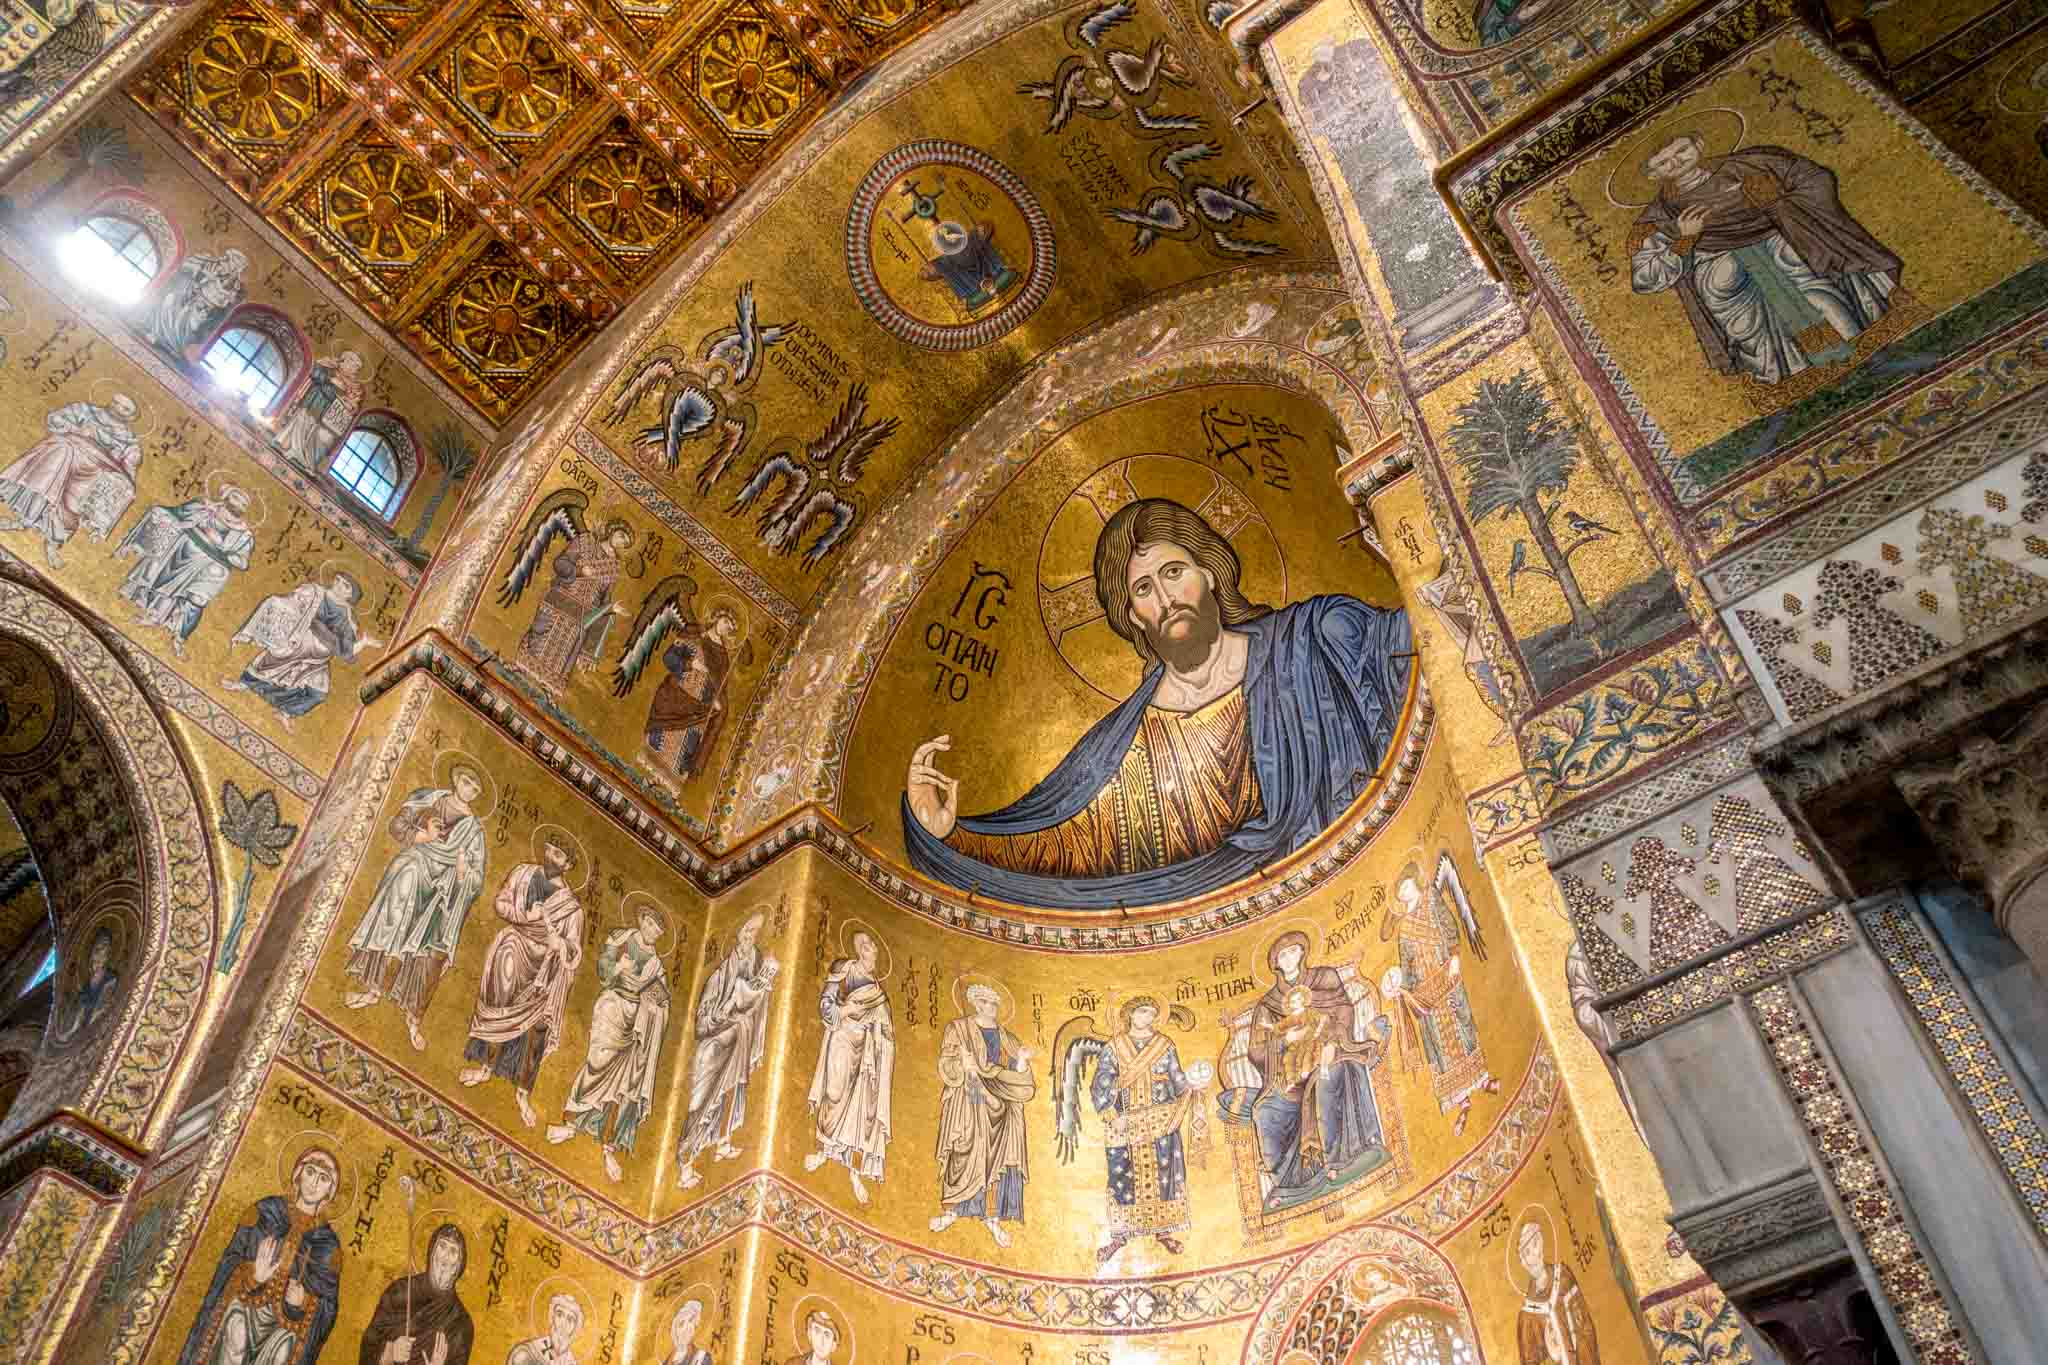 Large tile and gold mosaics of Jesus and the saints in Monreale, Sicily